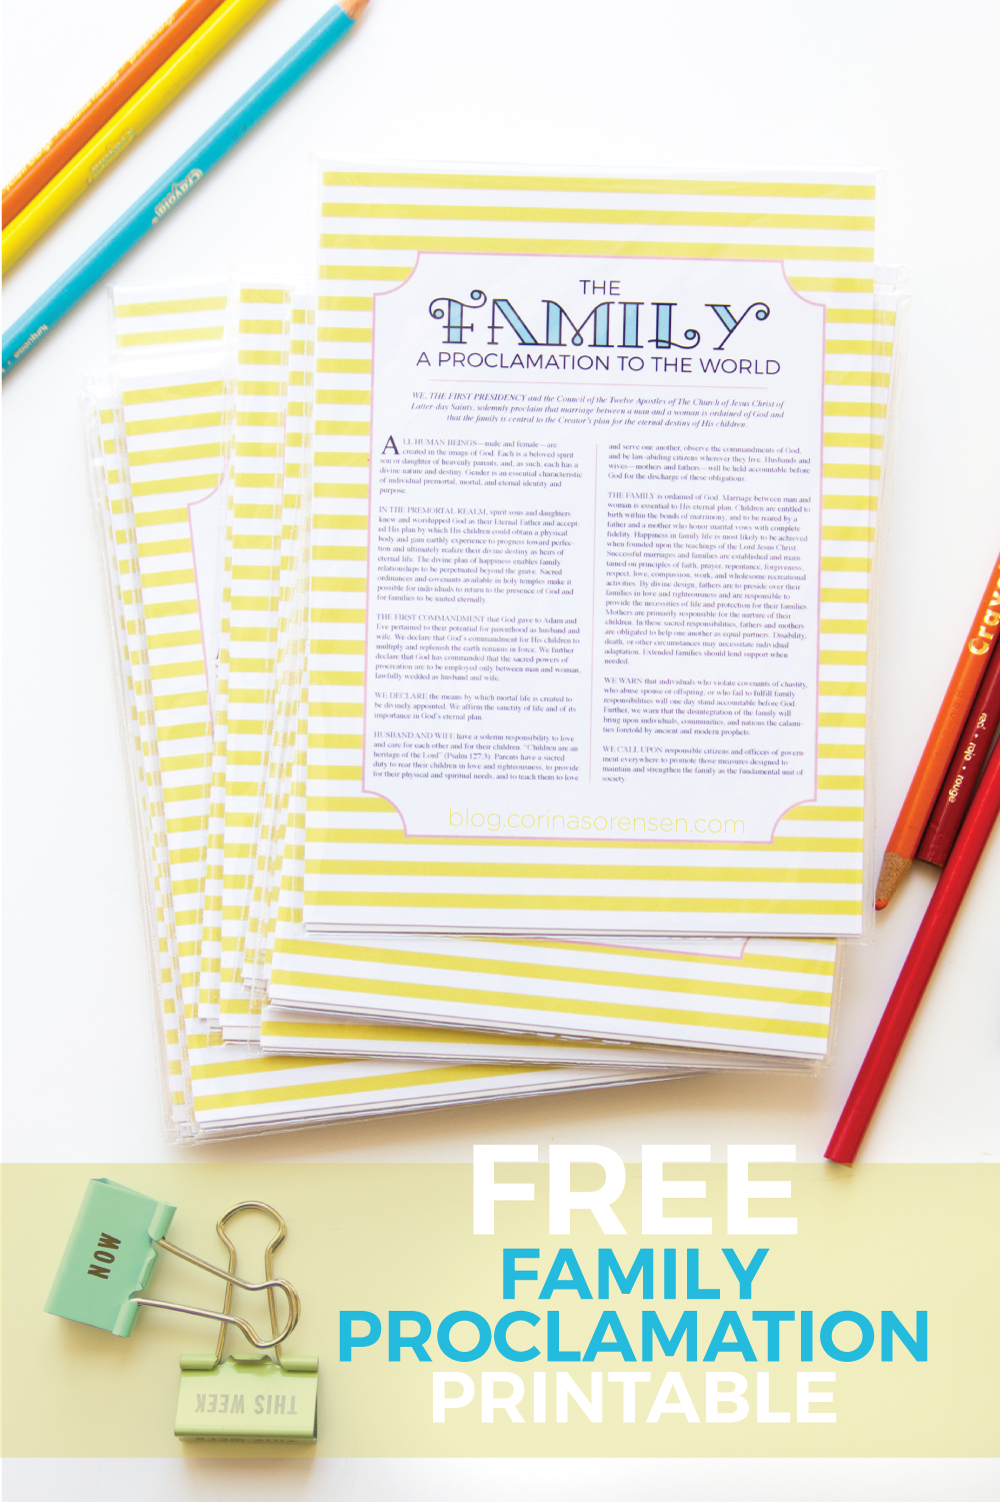 graphic relating to The Family a Proclamation to the World Free Printable called Free of charge Loved ones Proclamation Printable Corinas Corner